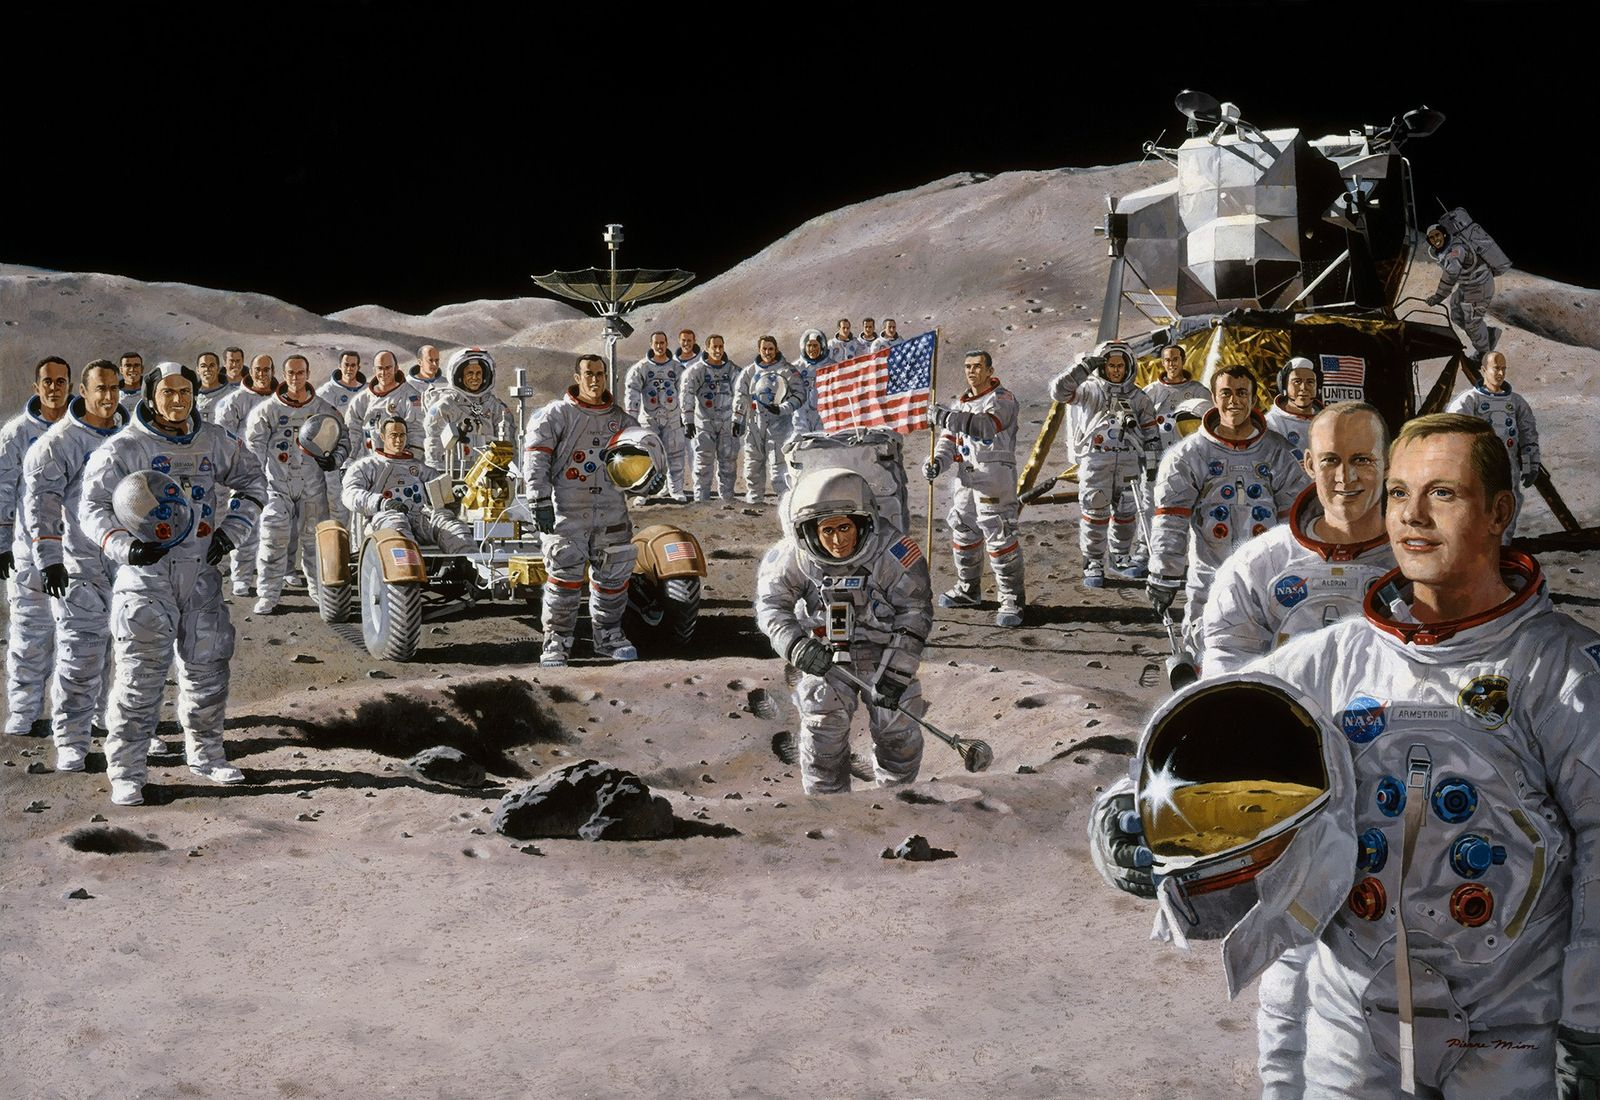 See How Apollo-Era Scientists Thought We'd Live On The Moon